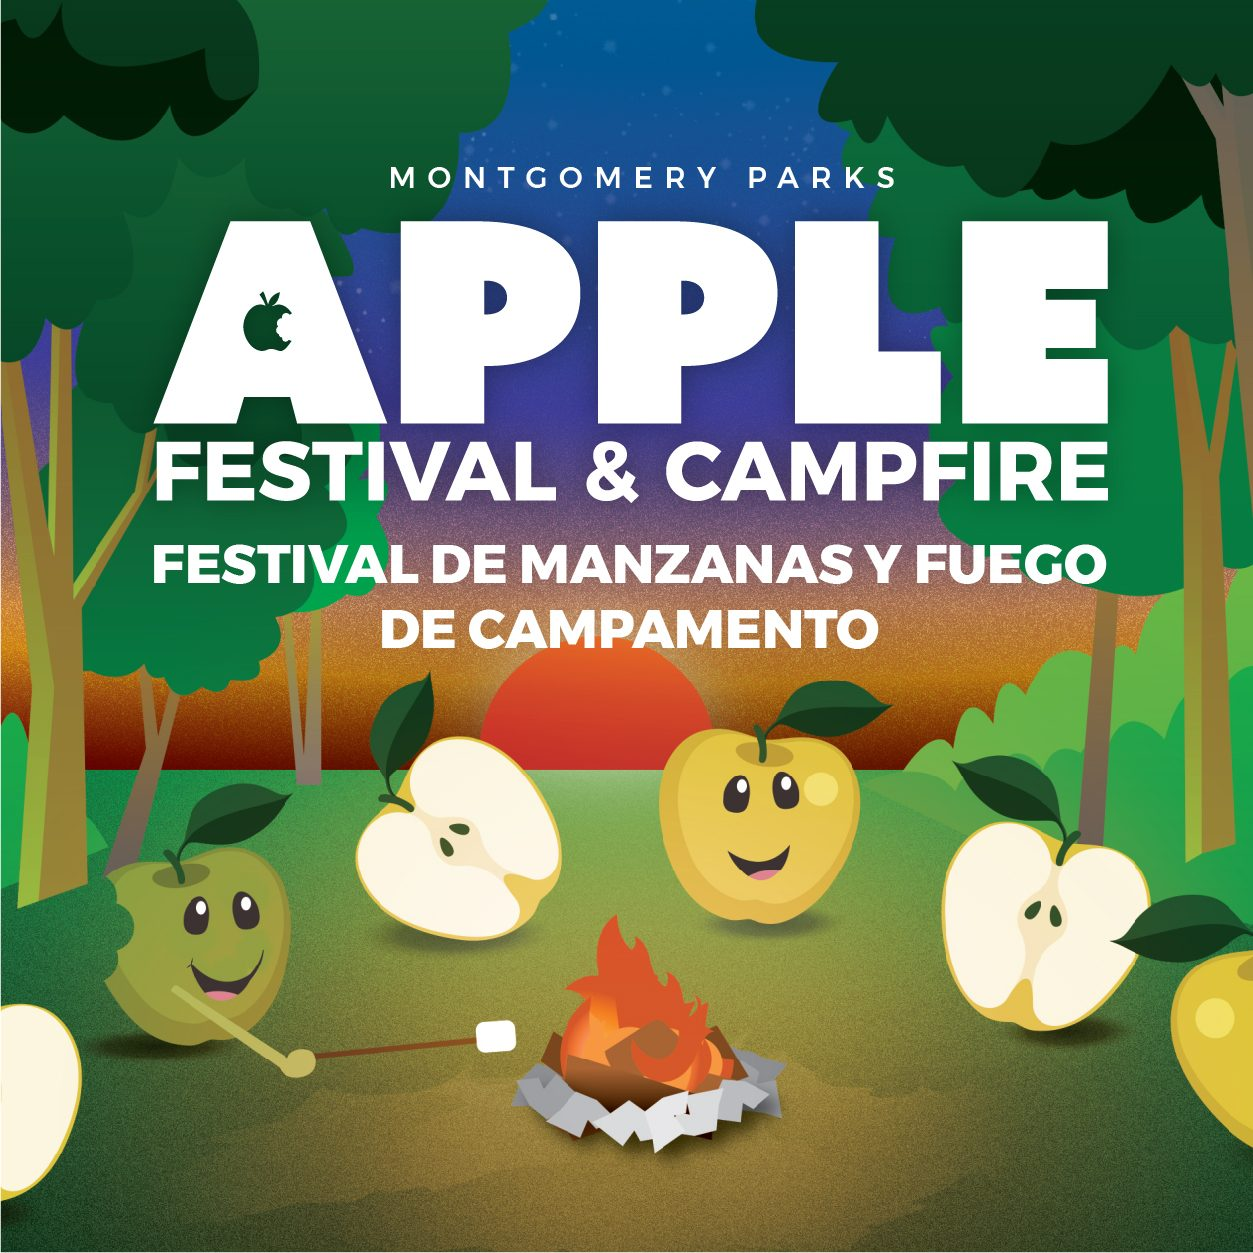 Cartoon of Apples sitting around a campfire in the woods